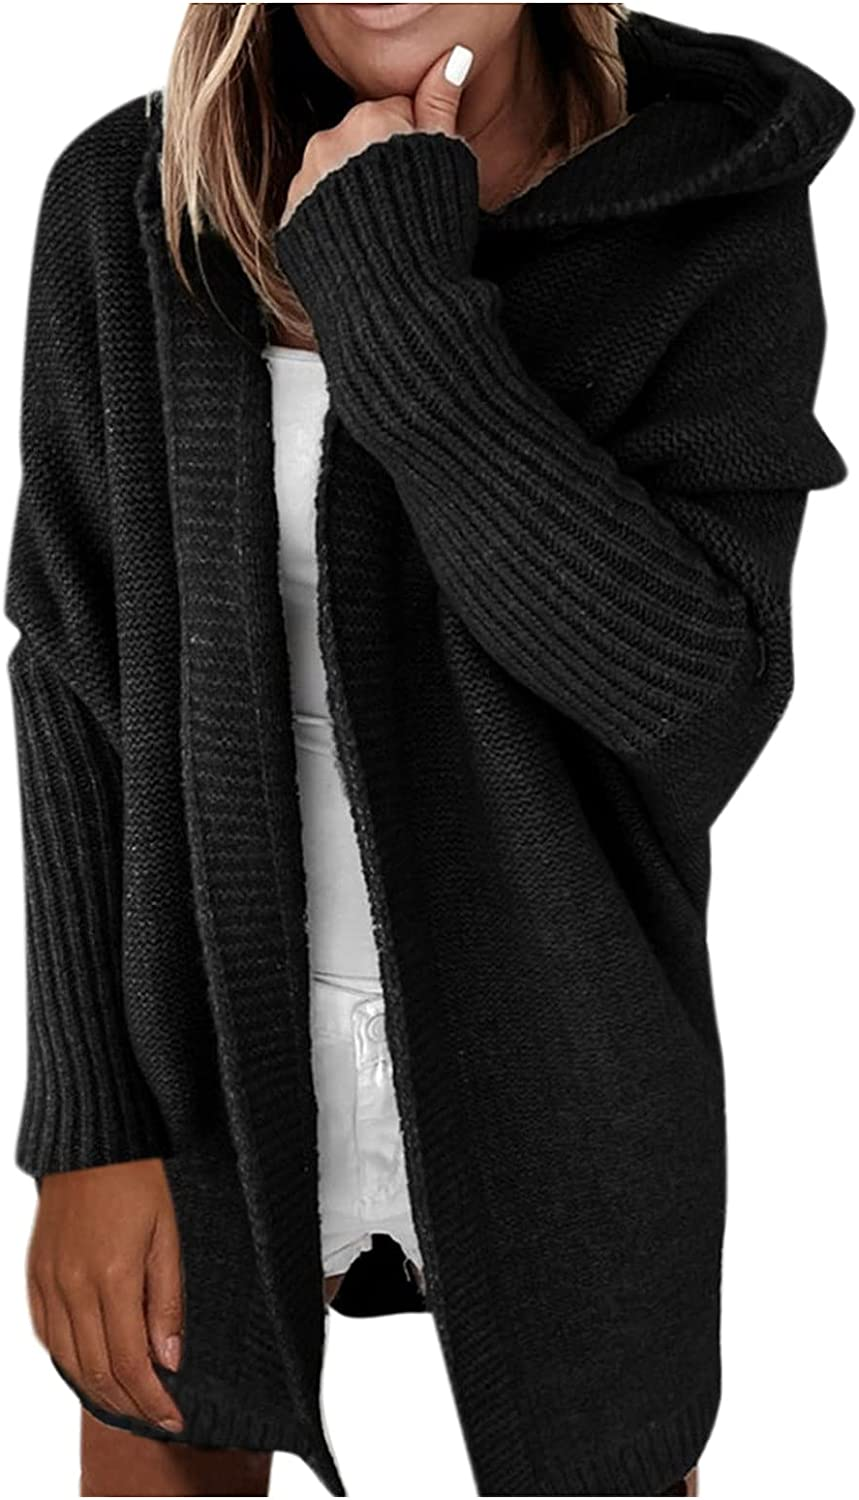 Oversized Sweaters For Women Open Front Solid Color Hooded Jackets Women Fashion Batwing Sleeve Sweater Cardigan Coat